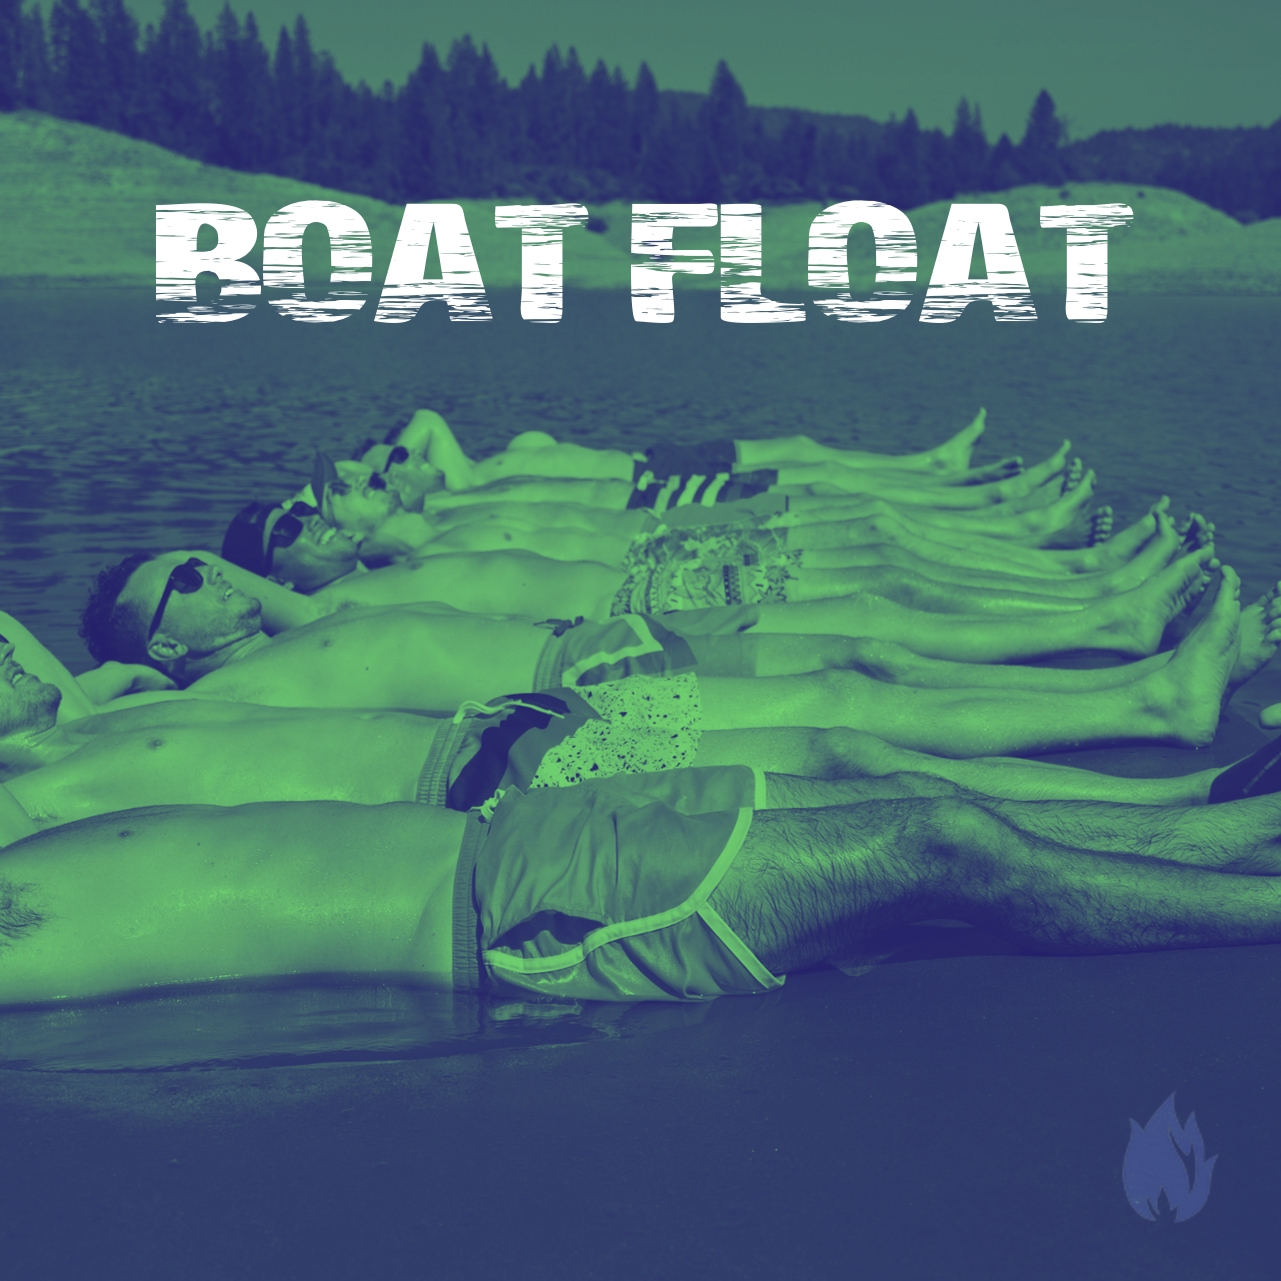 BOATFLOAT